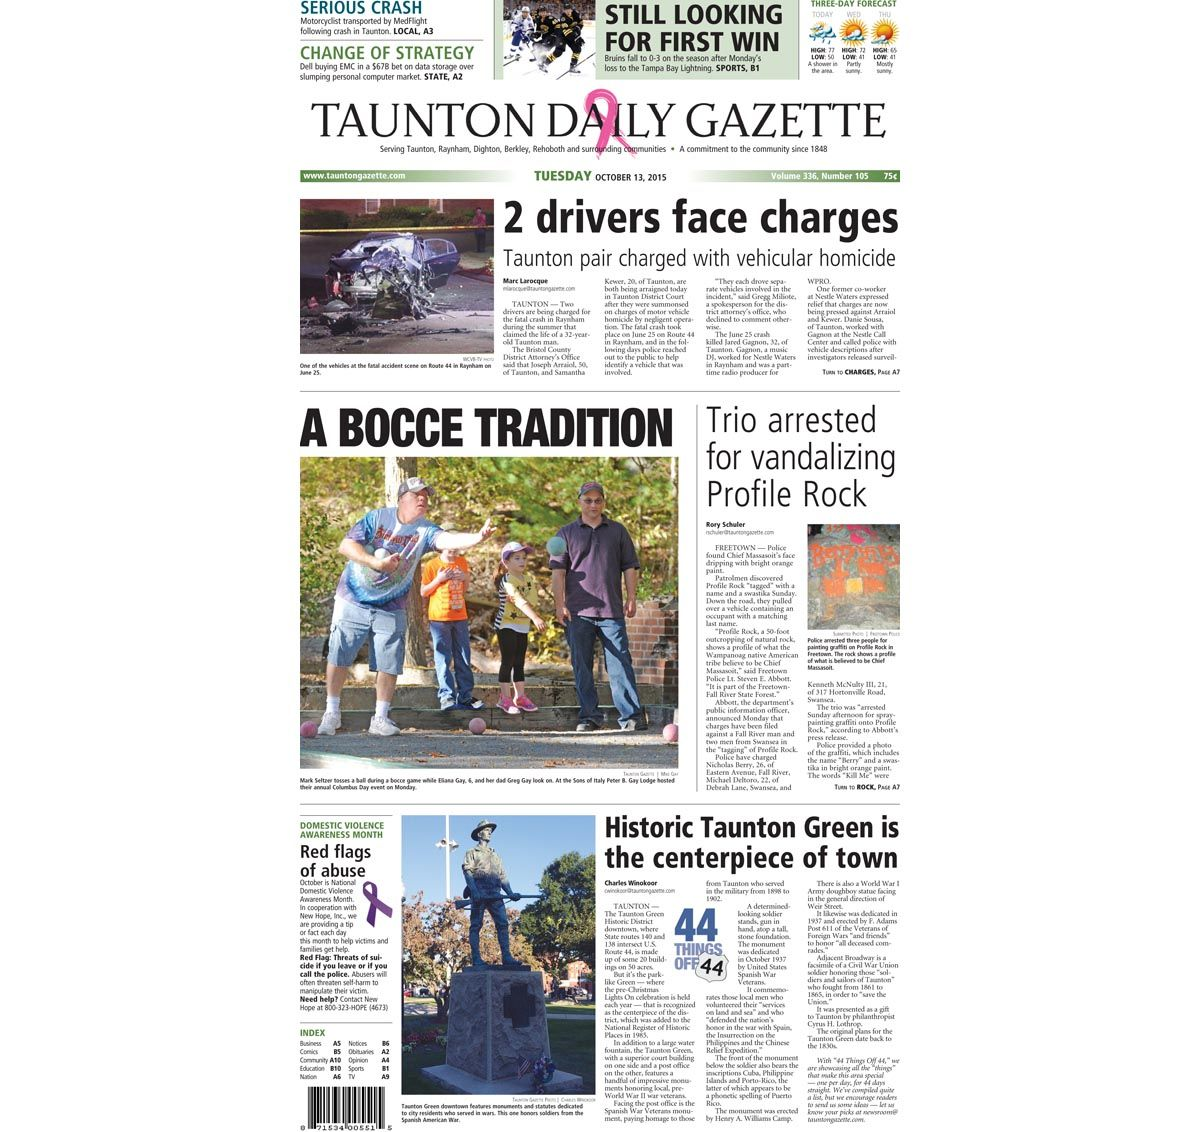 The front page of the Taunton Daily Gazette for Tuesday, Oct. 13, 2015.